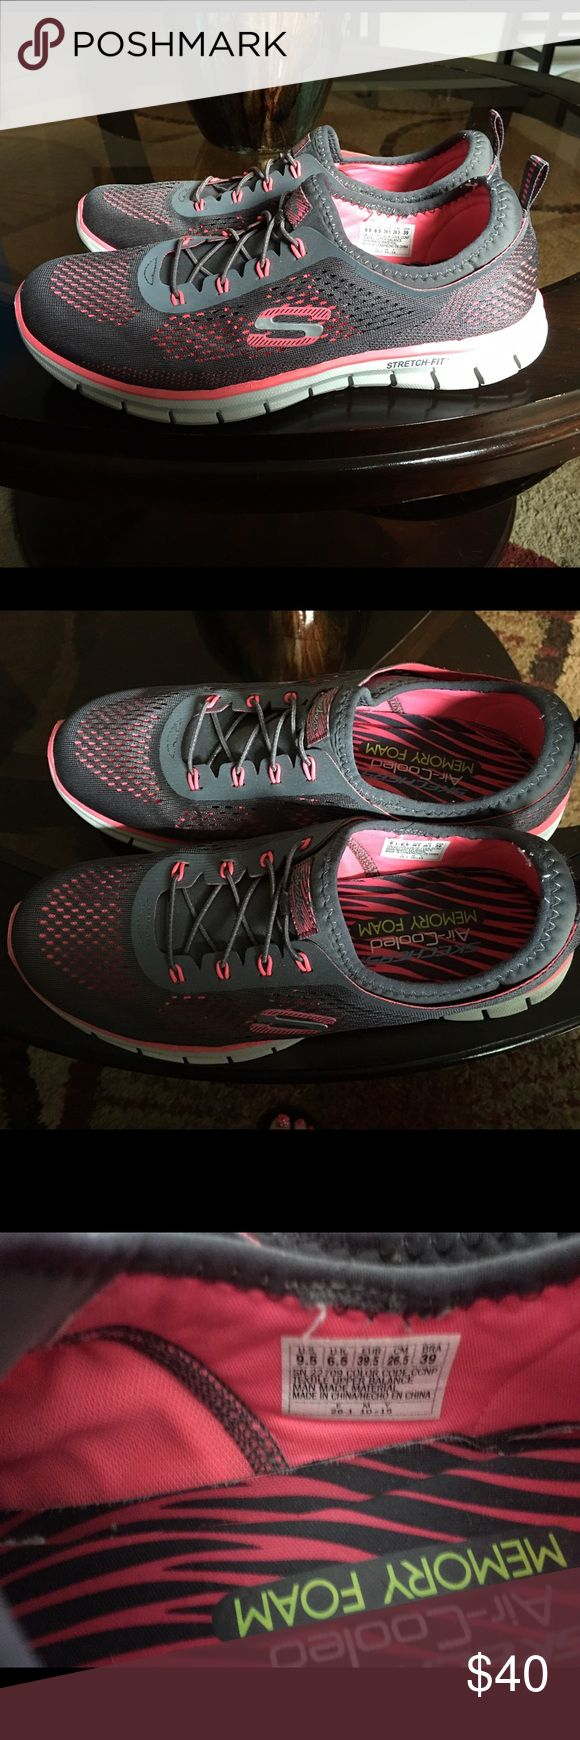 New Skechers Cooling Memory Foam Sneakers 9.5 Like new skechers cooling sneakers with memory foam, size 9.5 but can fit a 9 too. So nice and comfortable! Slip on for an easy on the go look! Skechers Shoes Athletic Shoes